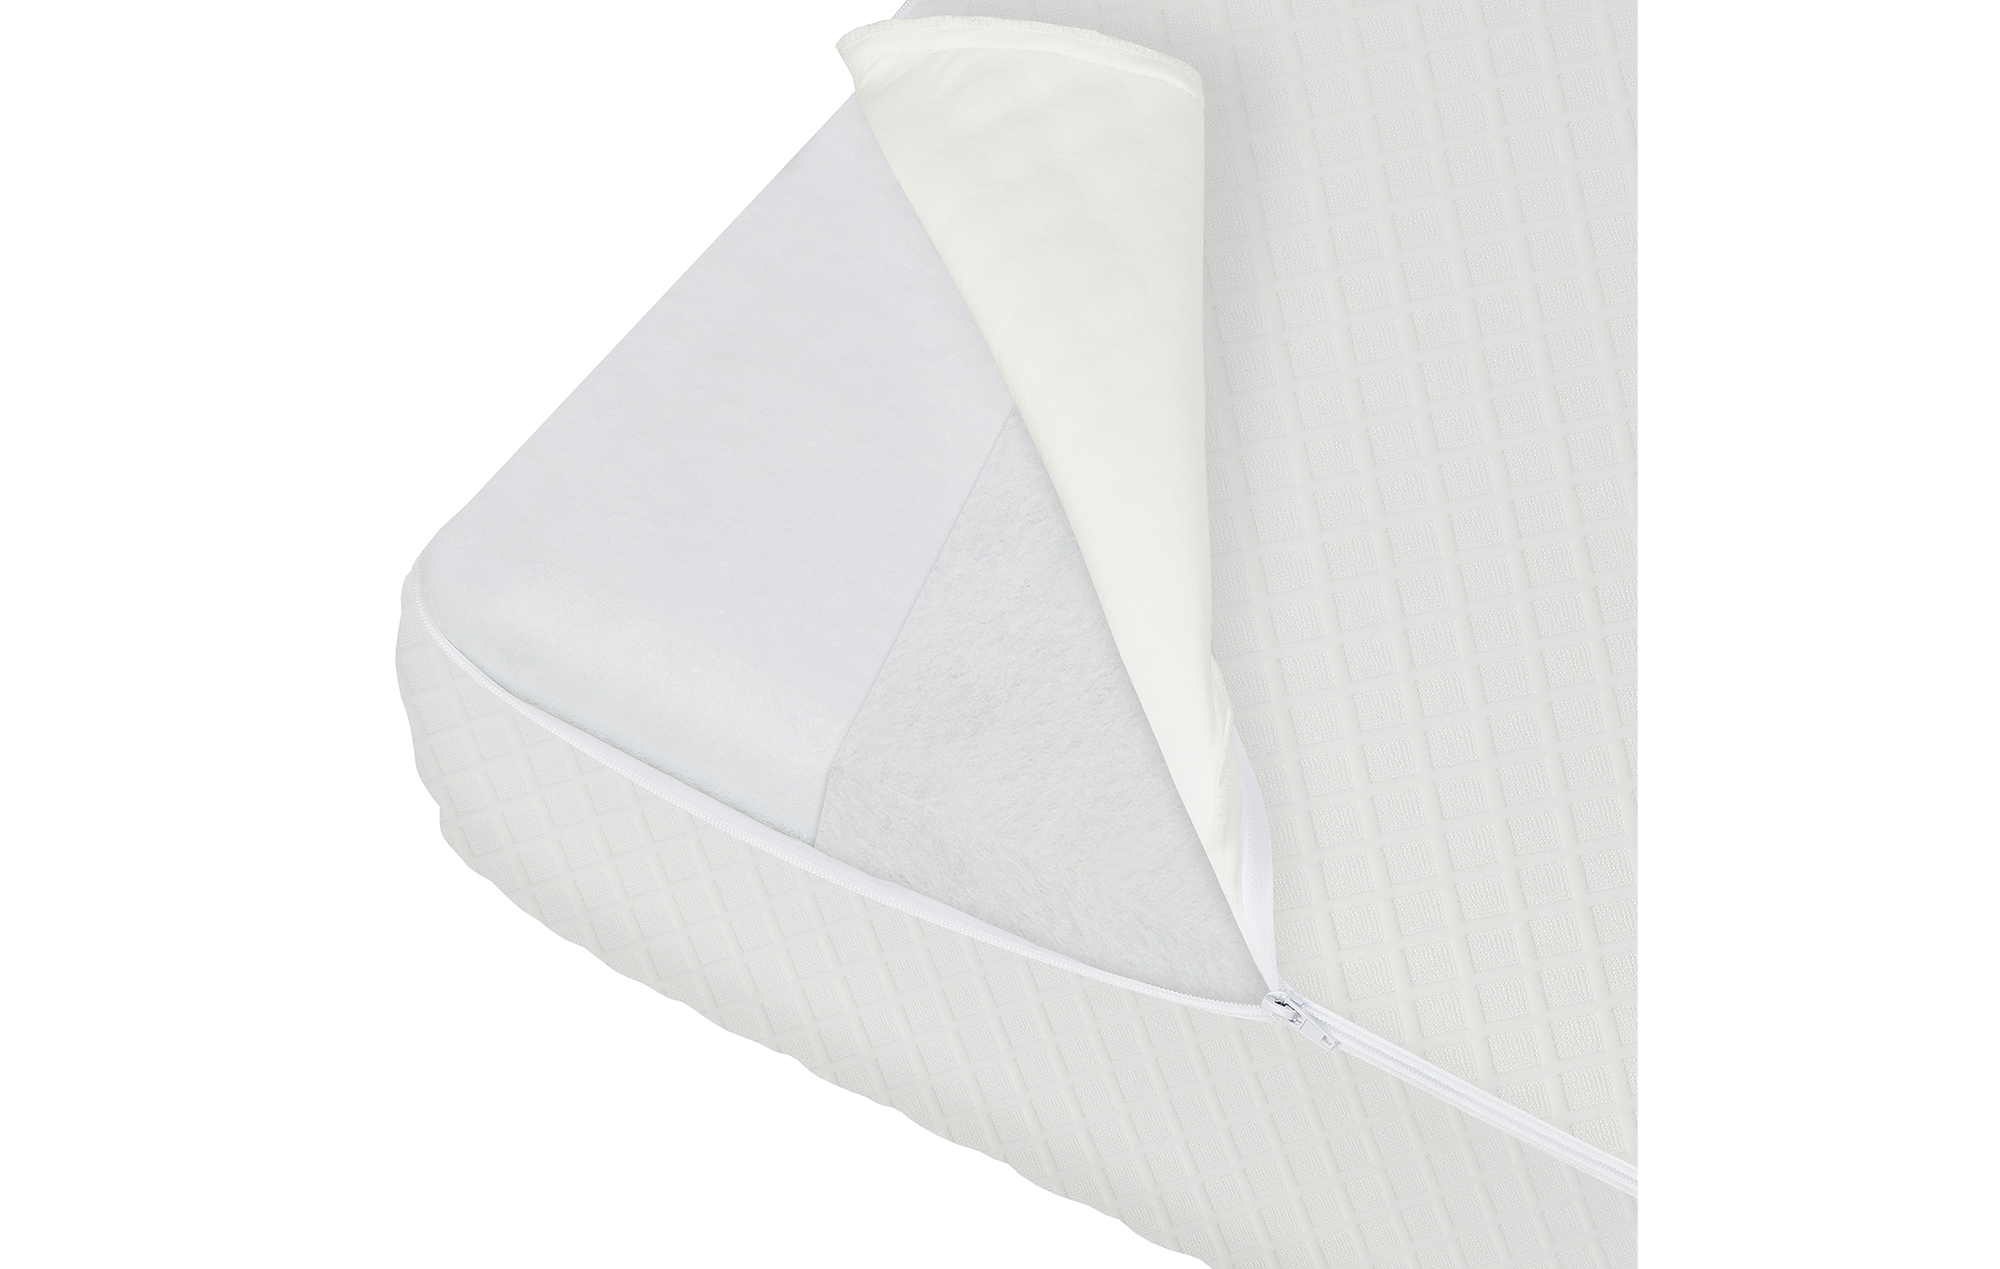 Comfort Lite Plus Fiber Mattress